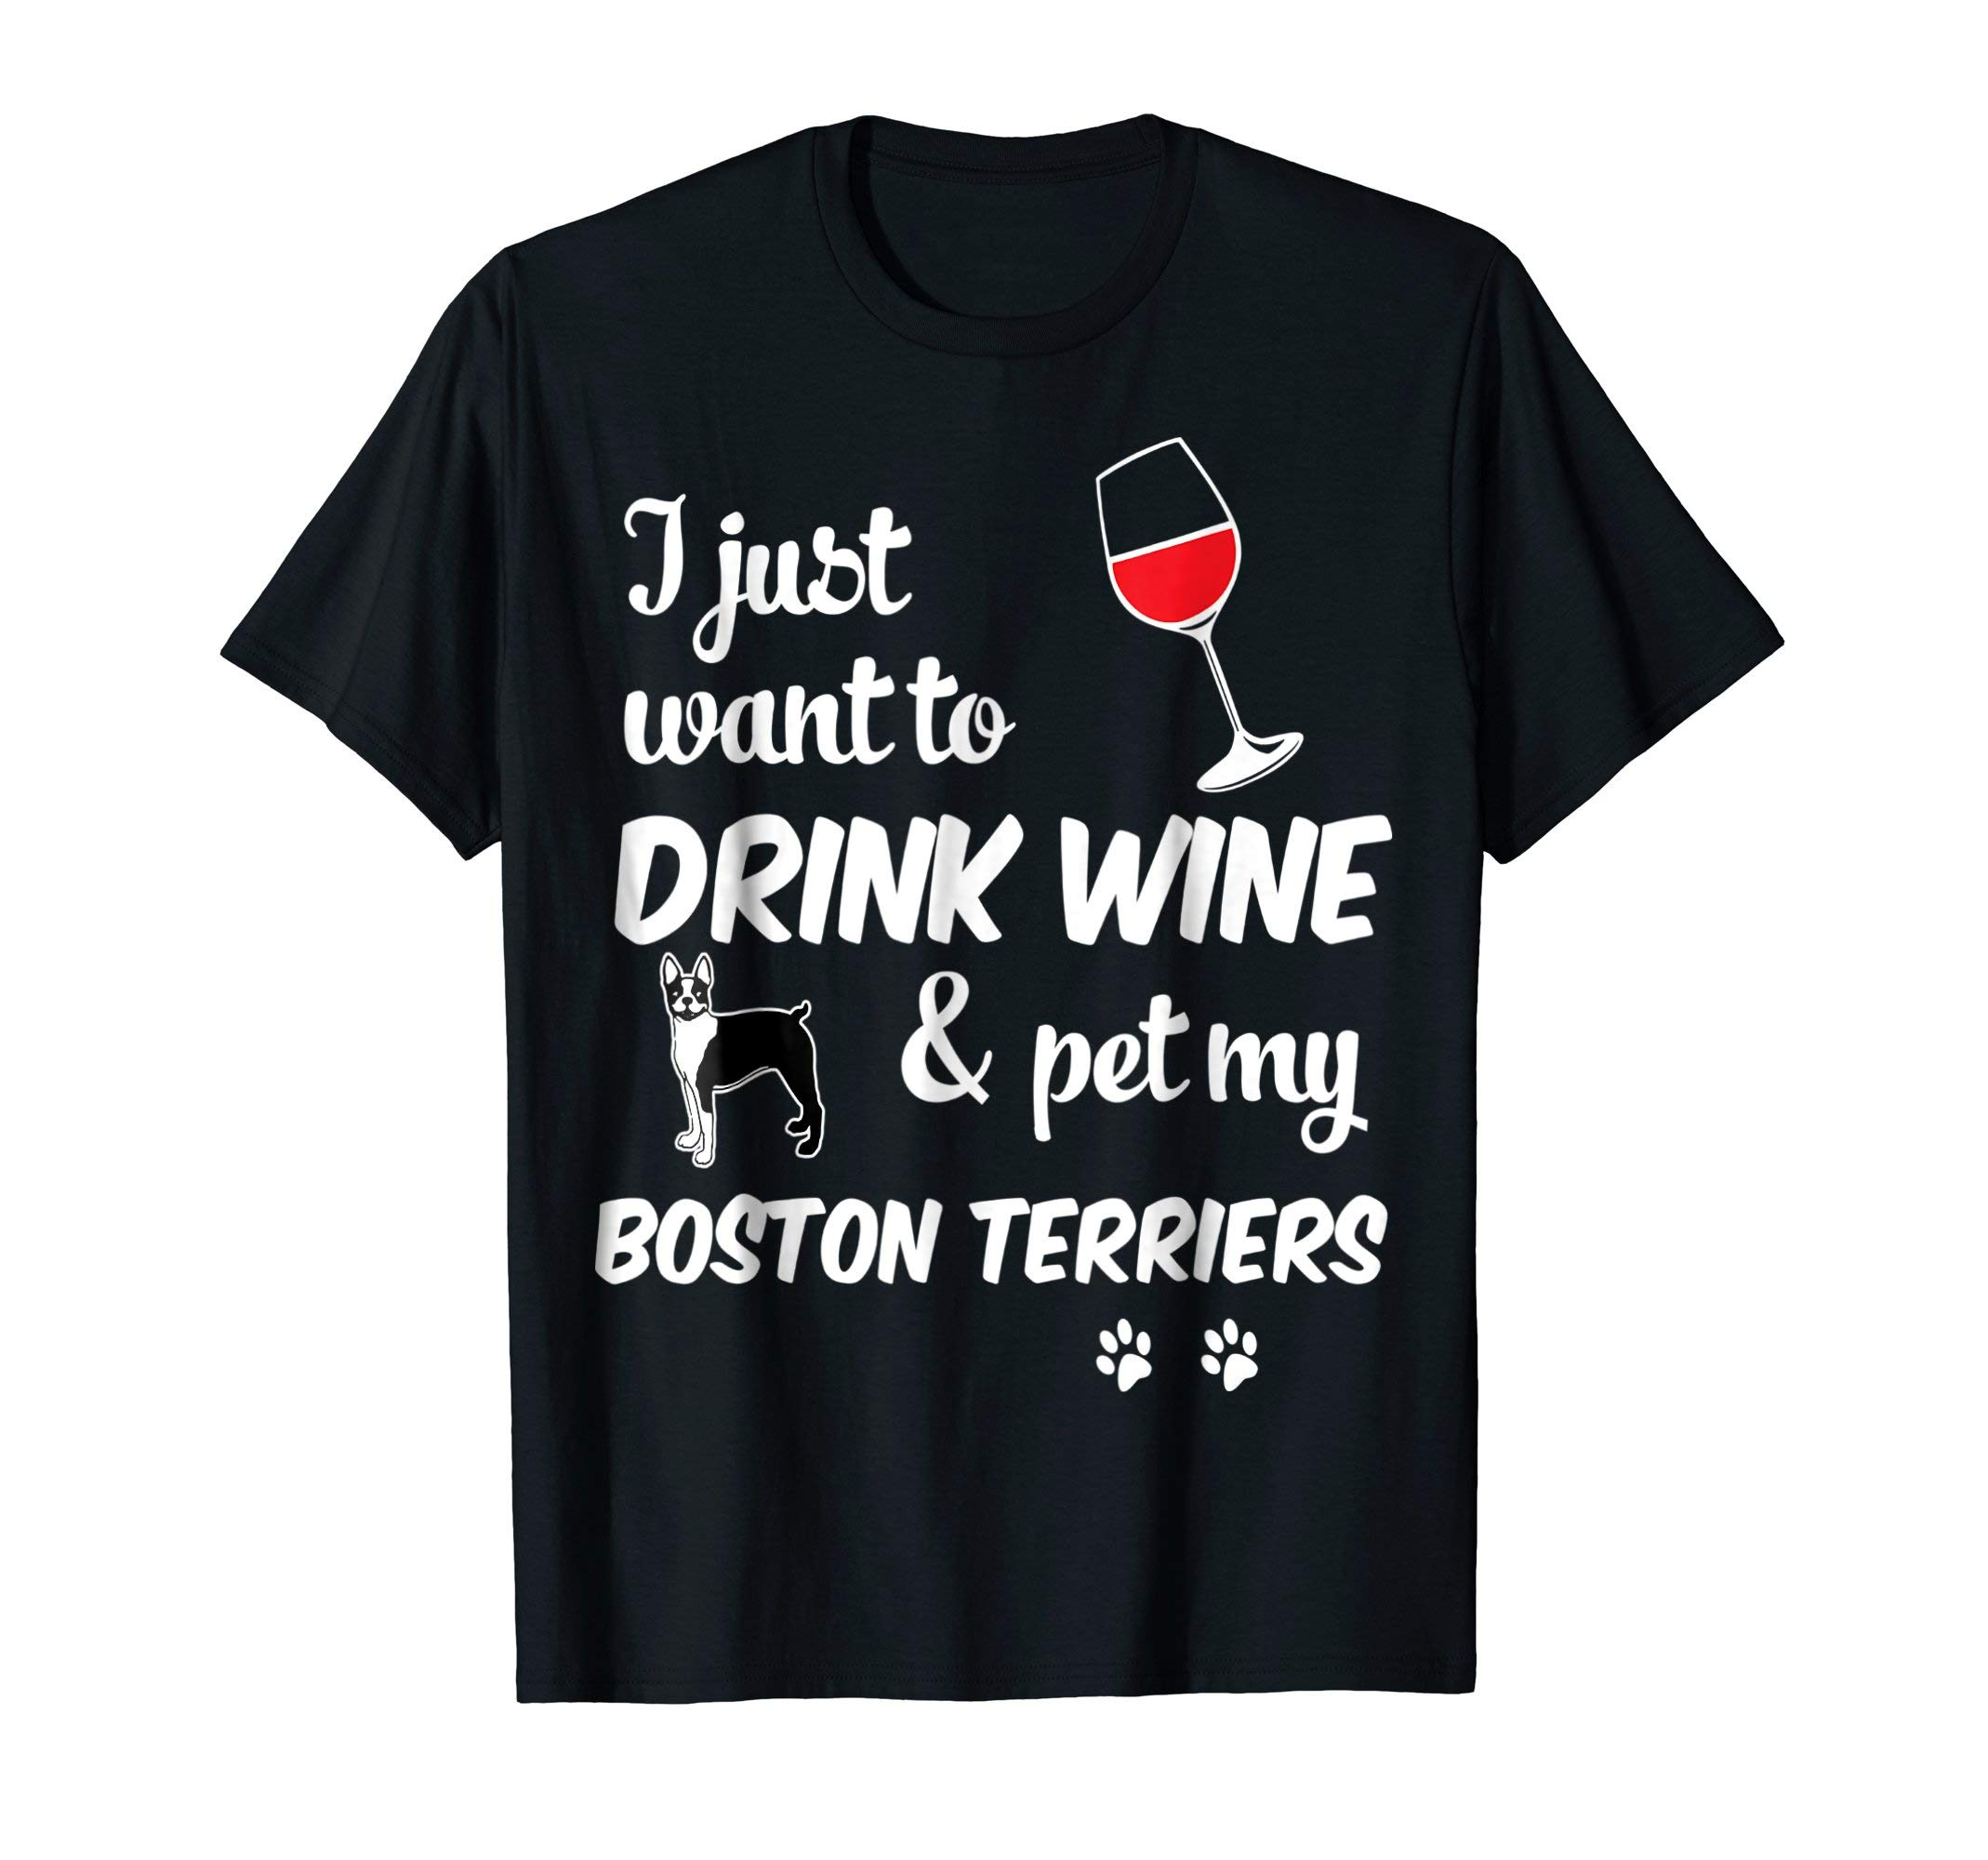 I Just Want To Drink Wine & Pet My Boston Terriers Tshirt